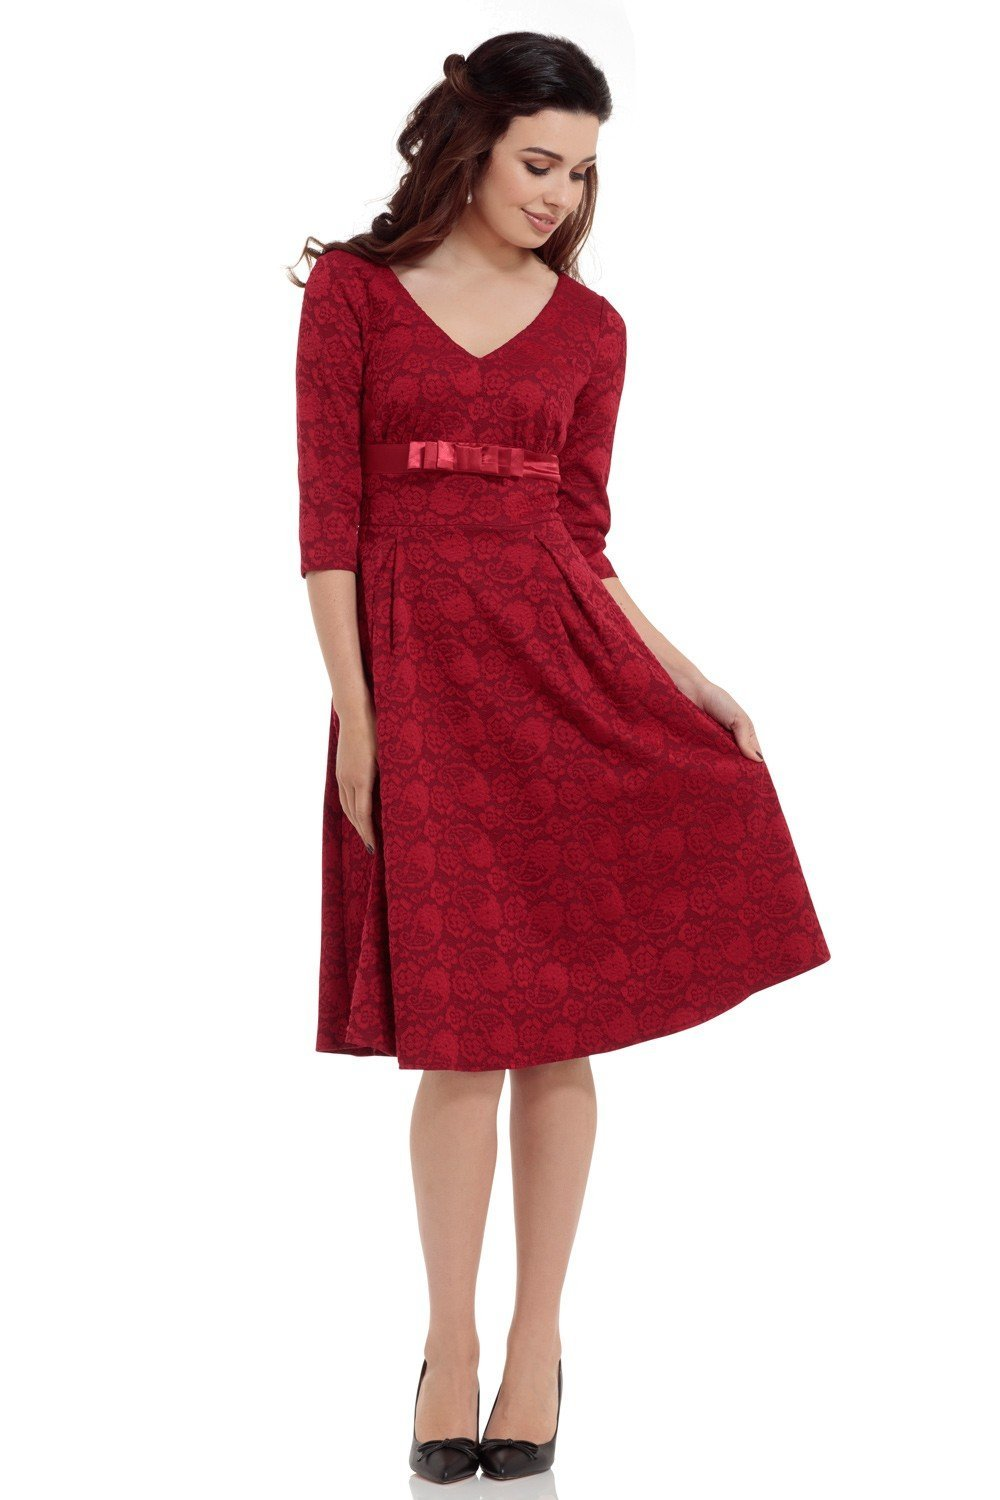 Voodoo Vixen Red Jane Dress - Bohemian Finds